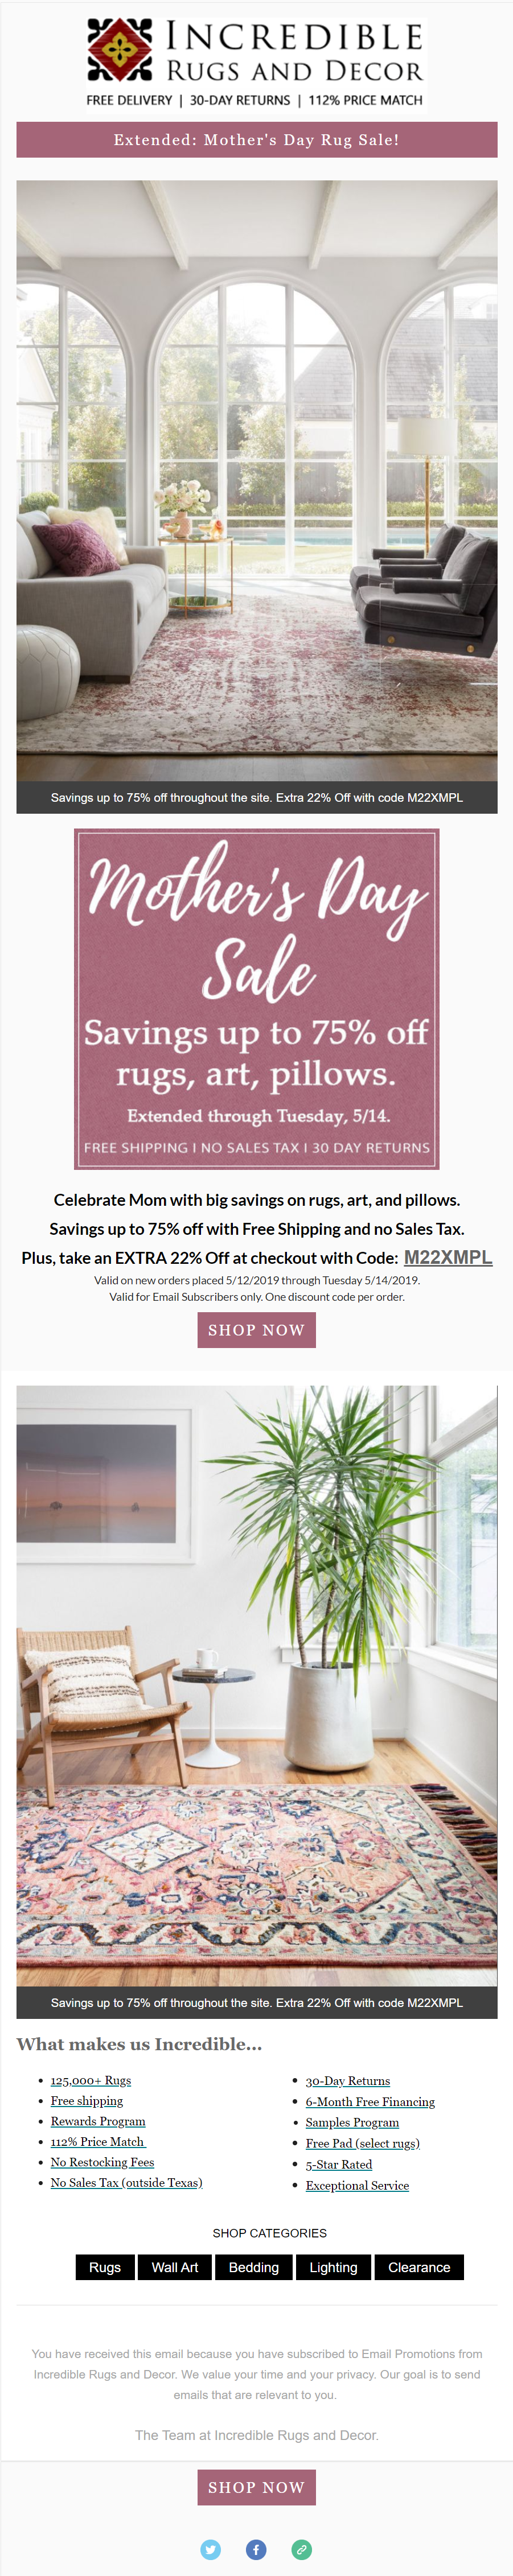 incrediblerugsanddecor-com-extended-mothers-day-up-to-75-off-free-shipping-no-tax-and-extra-22-off